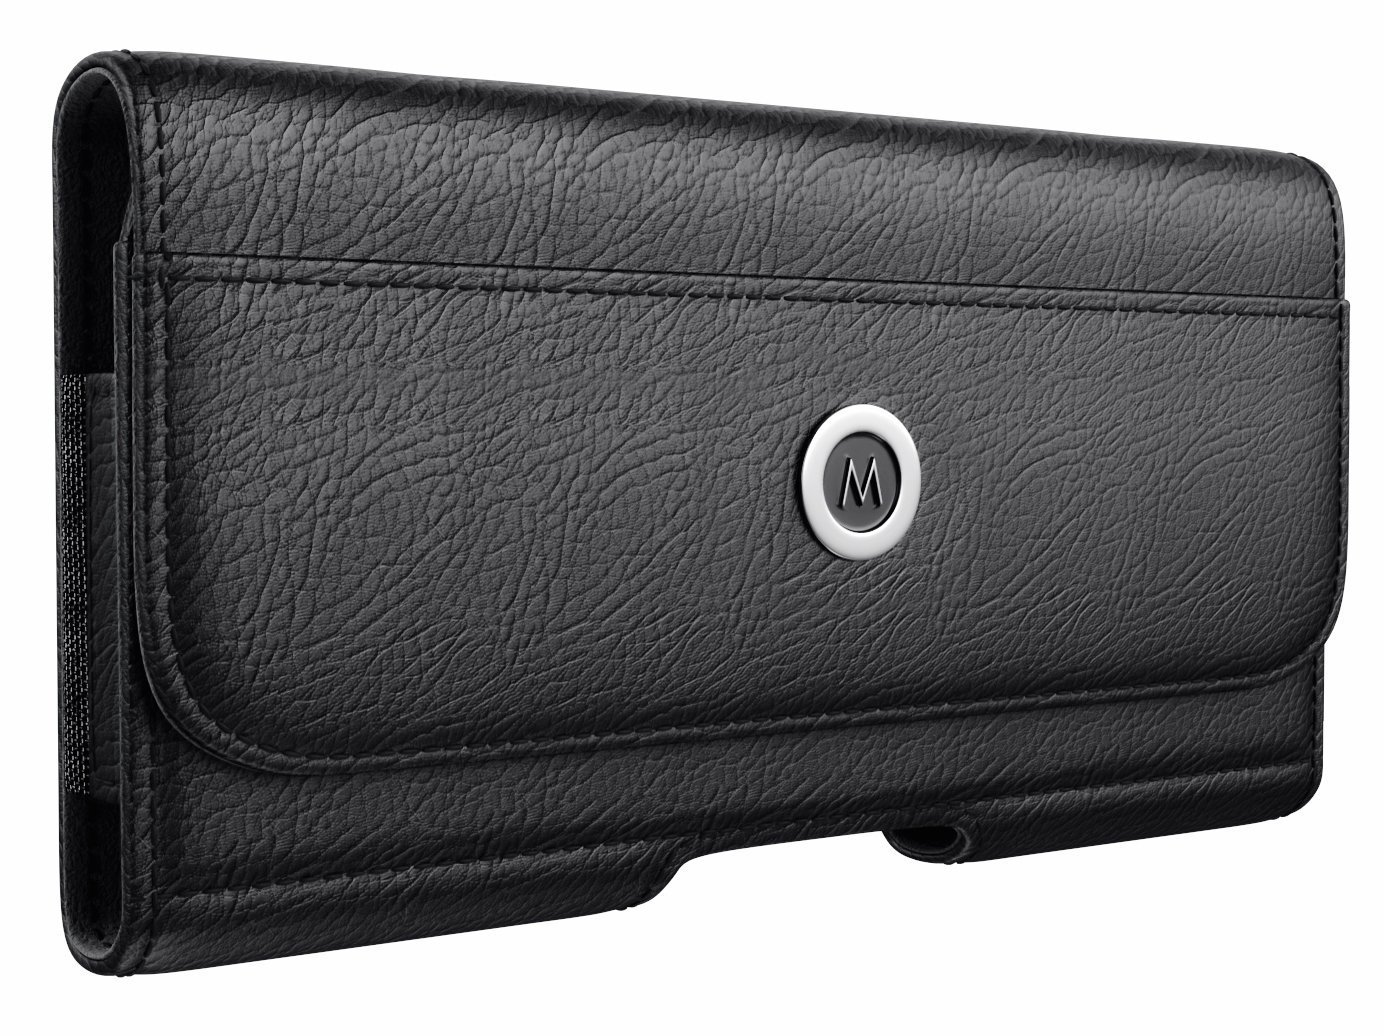 Meilib Galaxy S9 Plus Belt Case Galaxy S8 Plus Belt Clip Case - Leather Pouch Holster Case with Clip ID Card Holder for Samsung Galaxy S9+ / S8+ (Fits Phone w/Otterbox or Other Thick Case On) Black